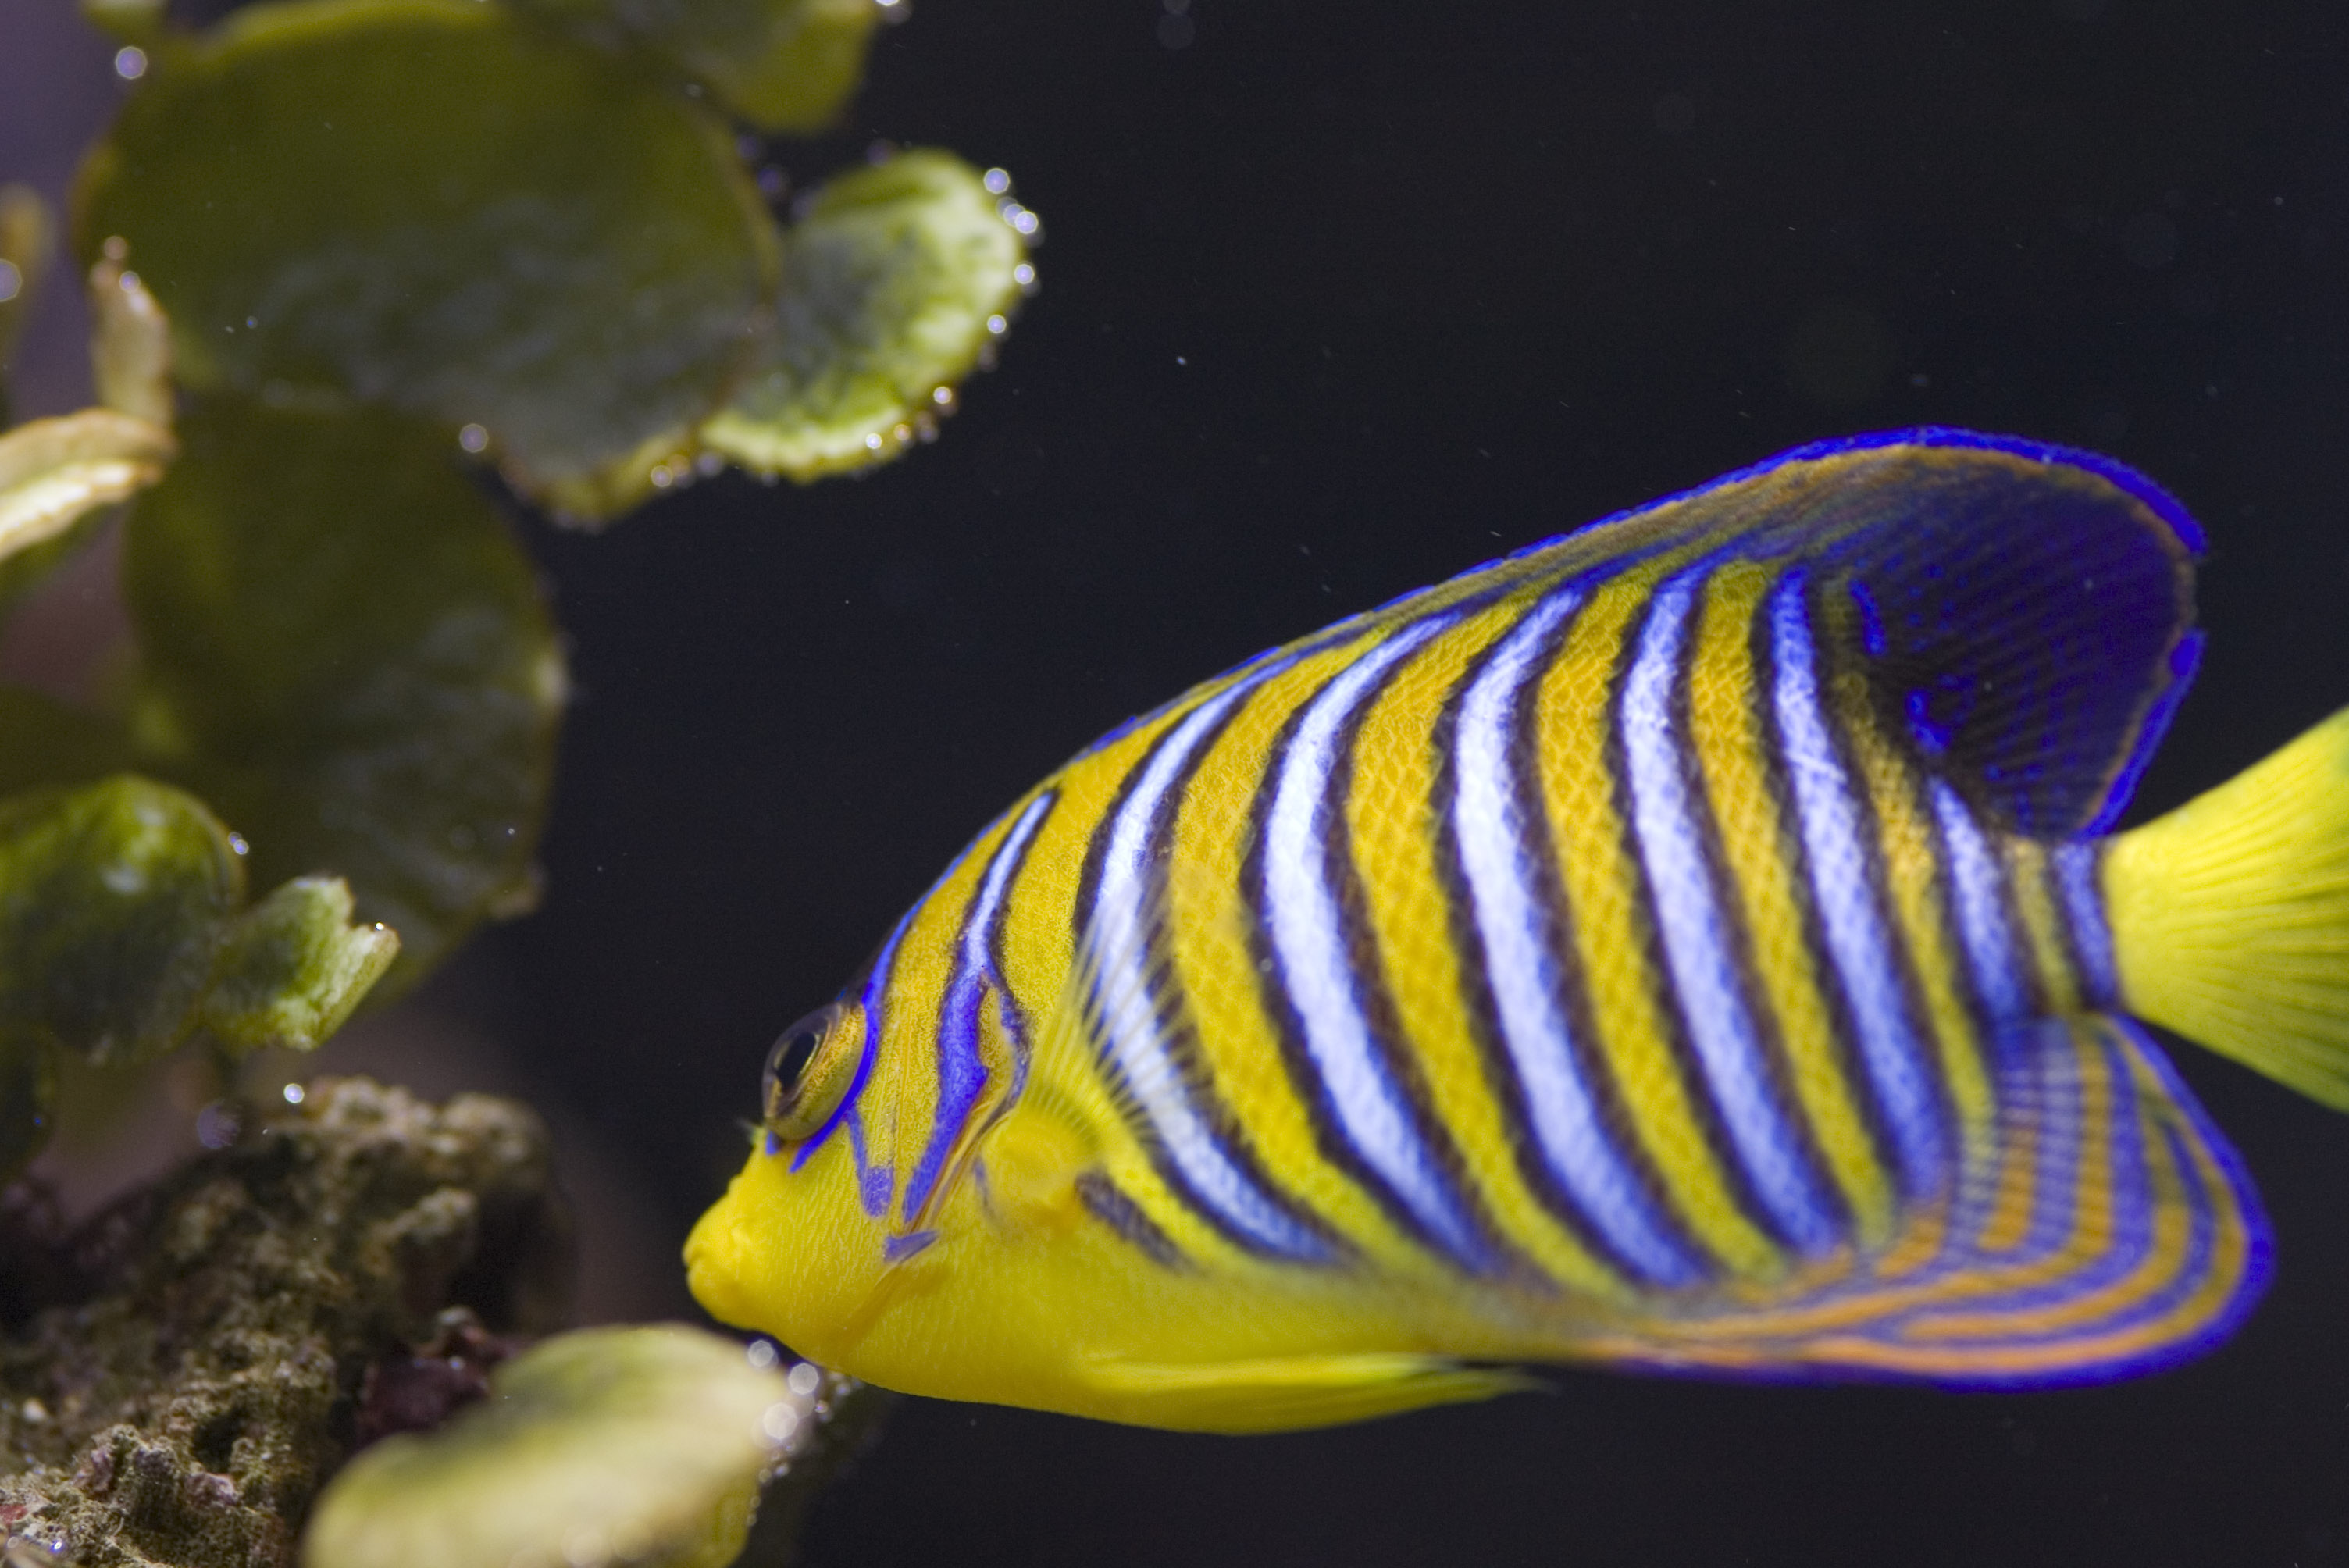 Striped fish images